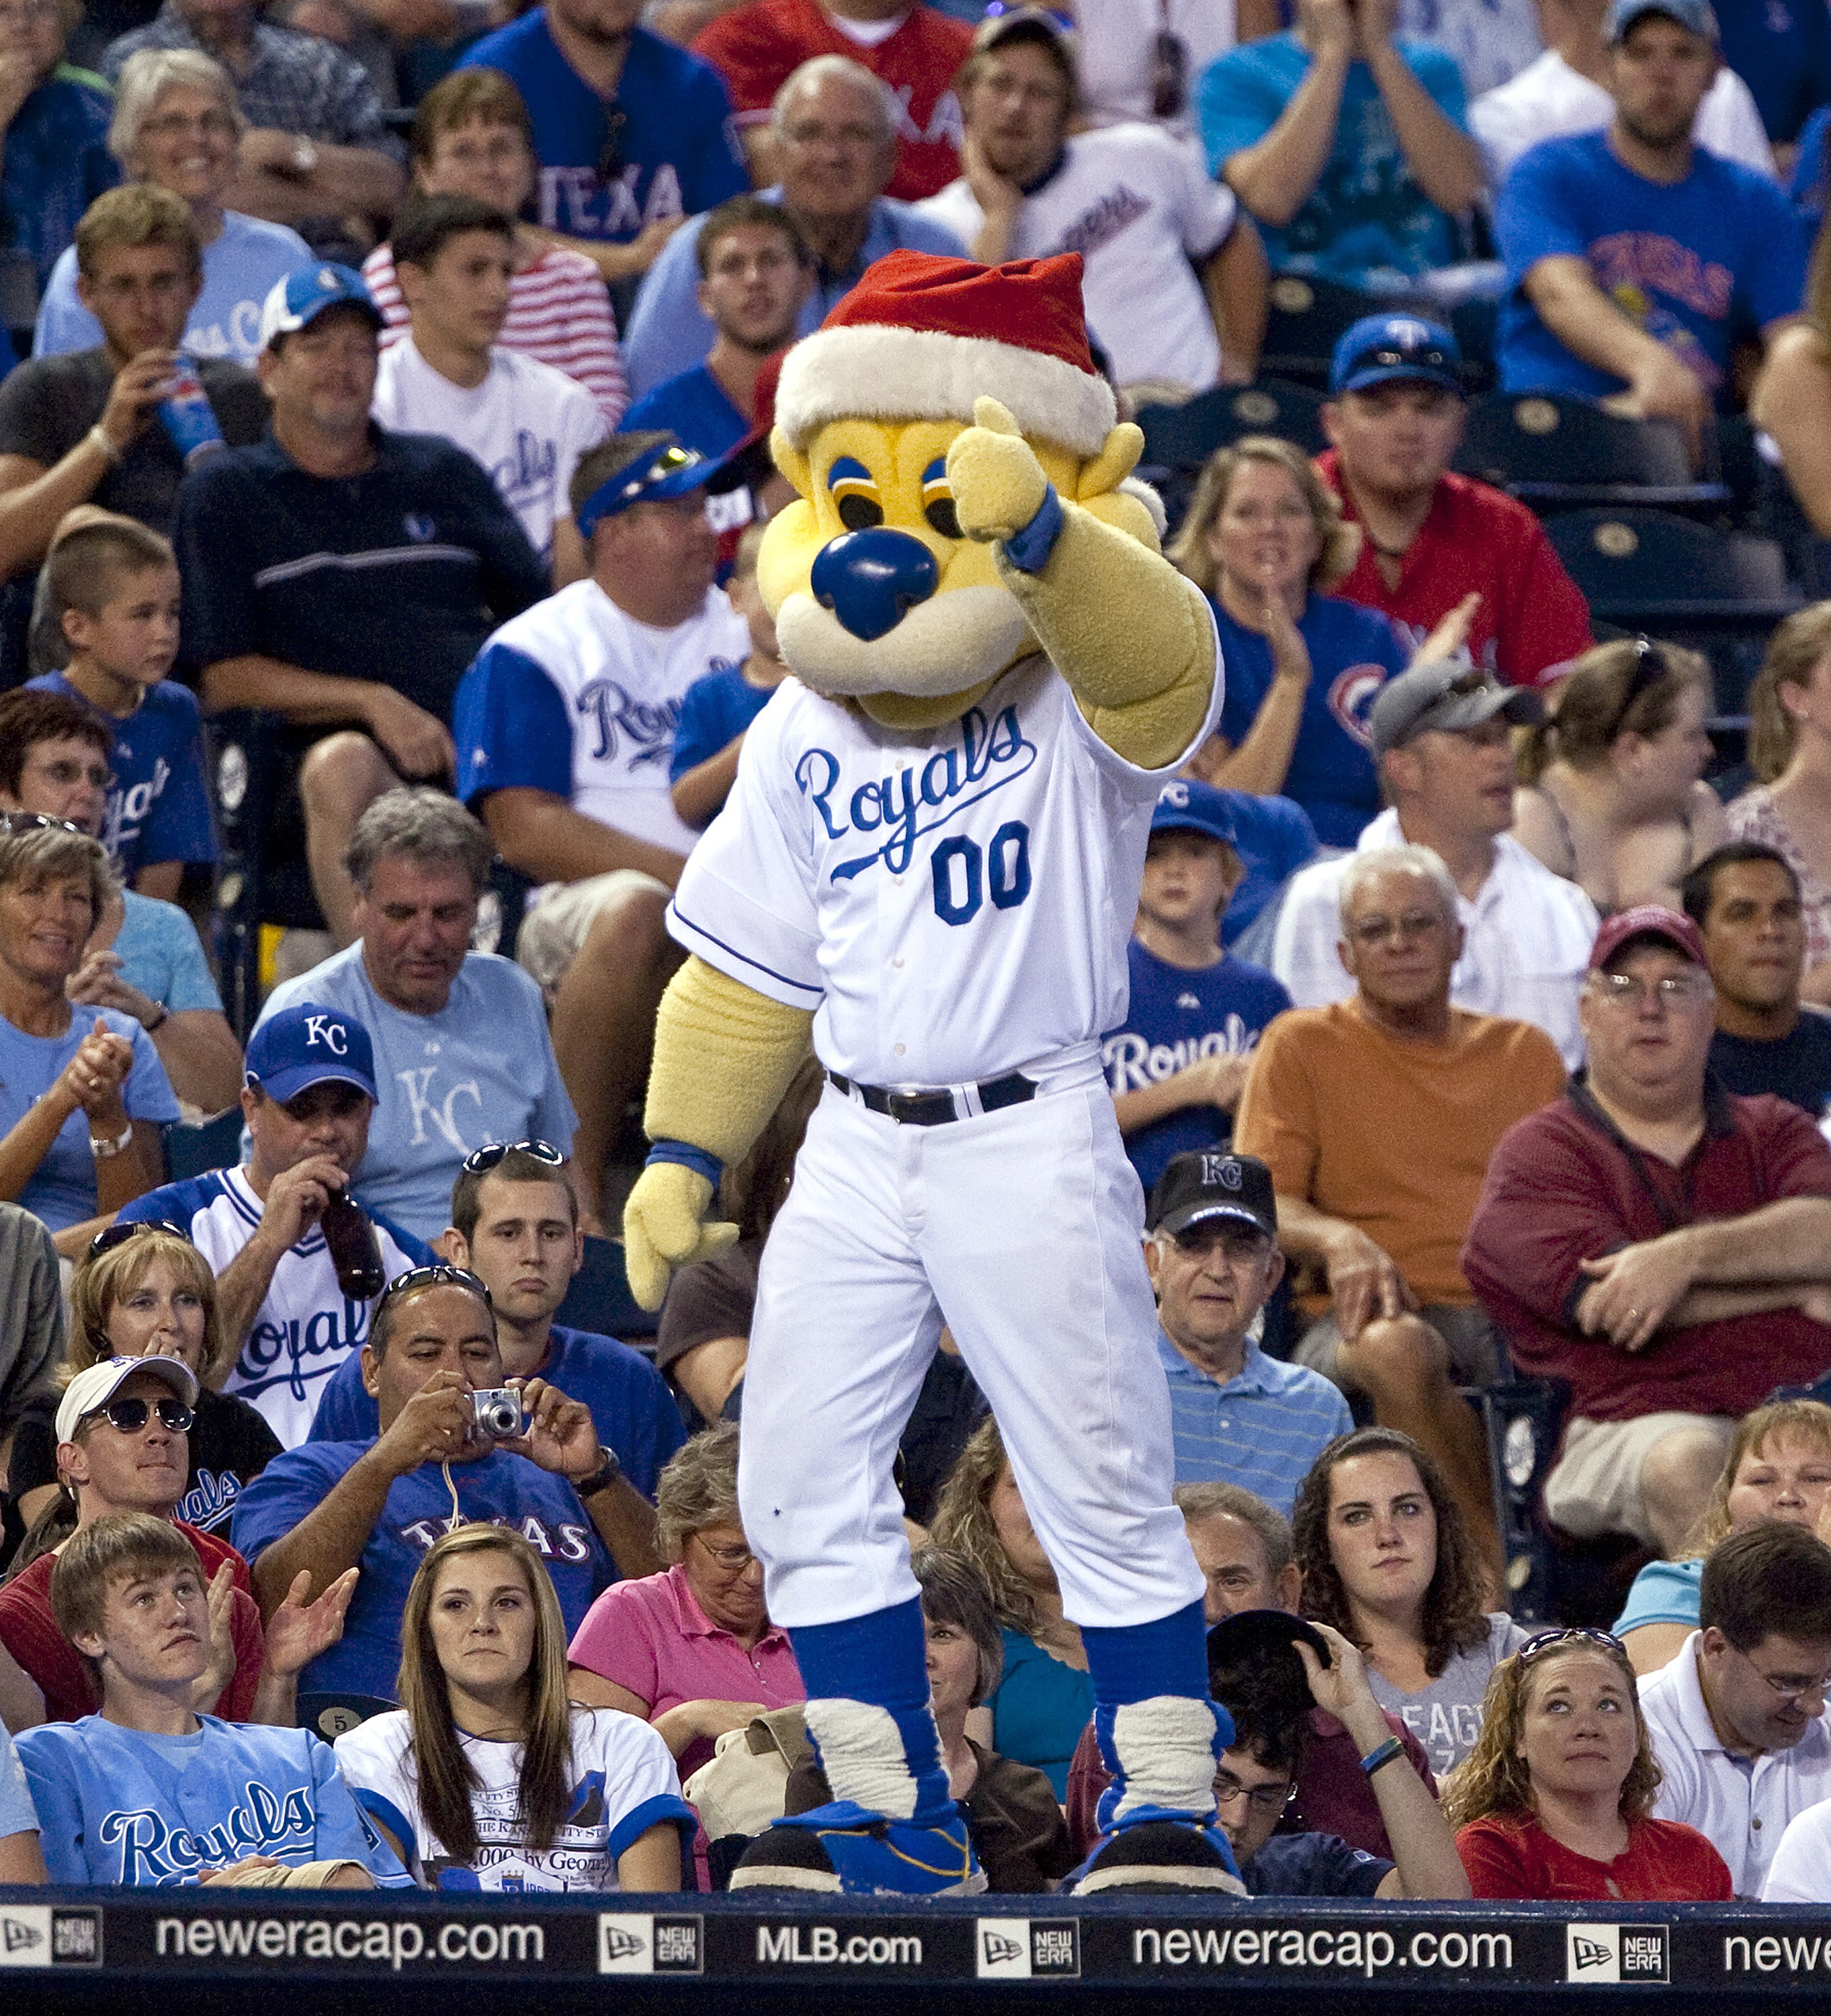 In honor of Christmas in July, Kansas City Royals mascot Sluggerrr wore a Santa hat as he cheared on the Royals during the ninth inning against the Texas Rangers. The Royals defeated the Rangers, 6-3, at Kauffman Stadium in Kansas City, Missouri, Saturday, July 25, 2009.